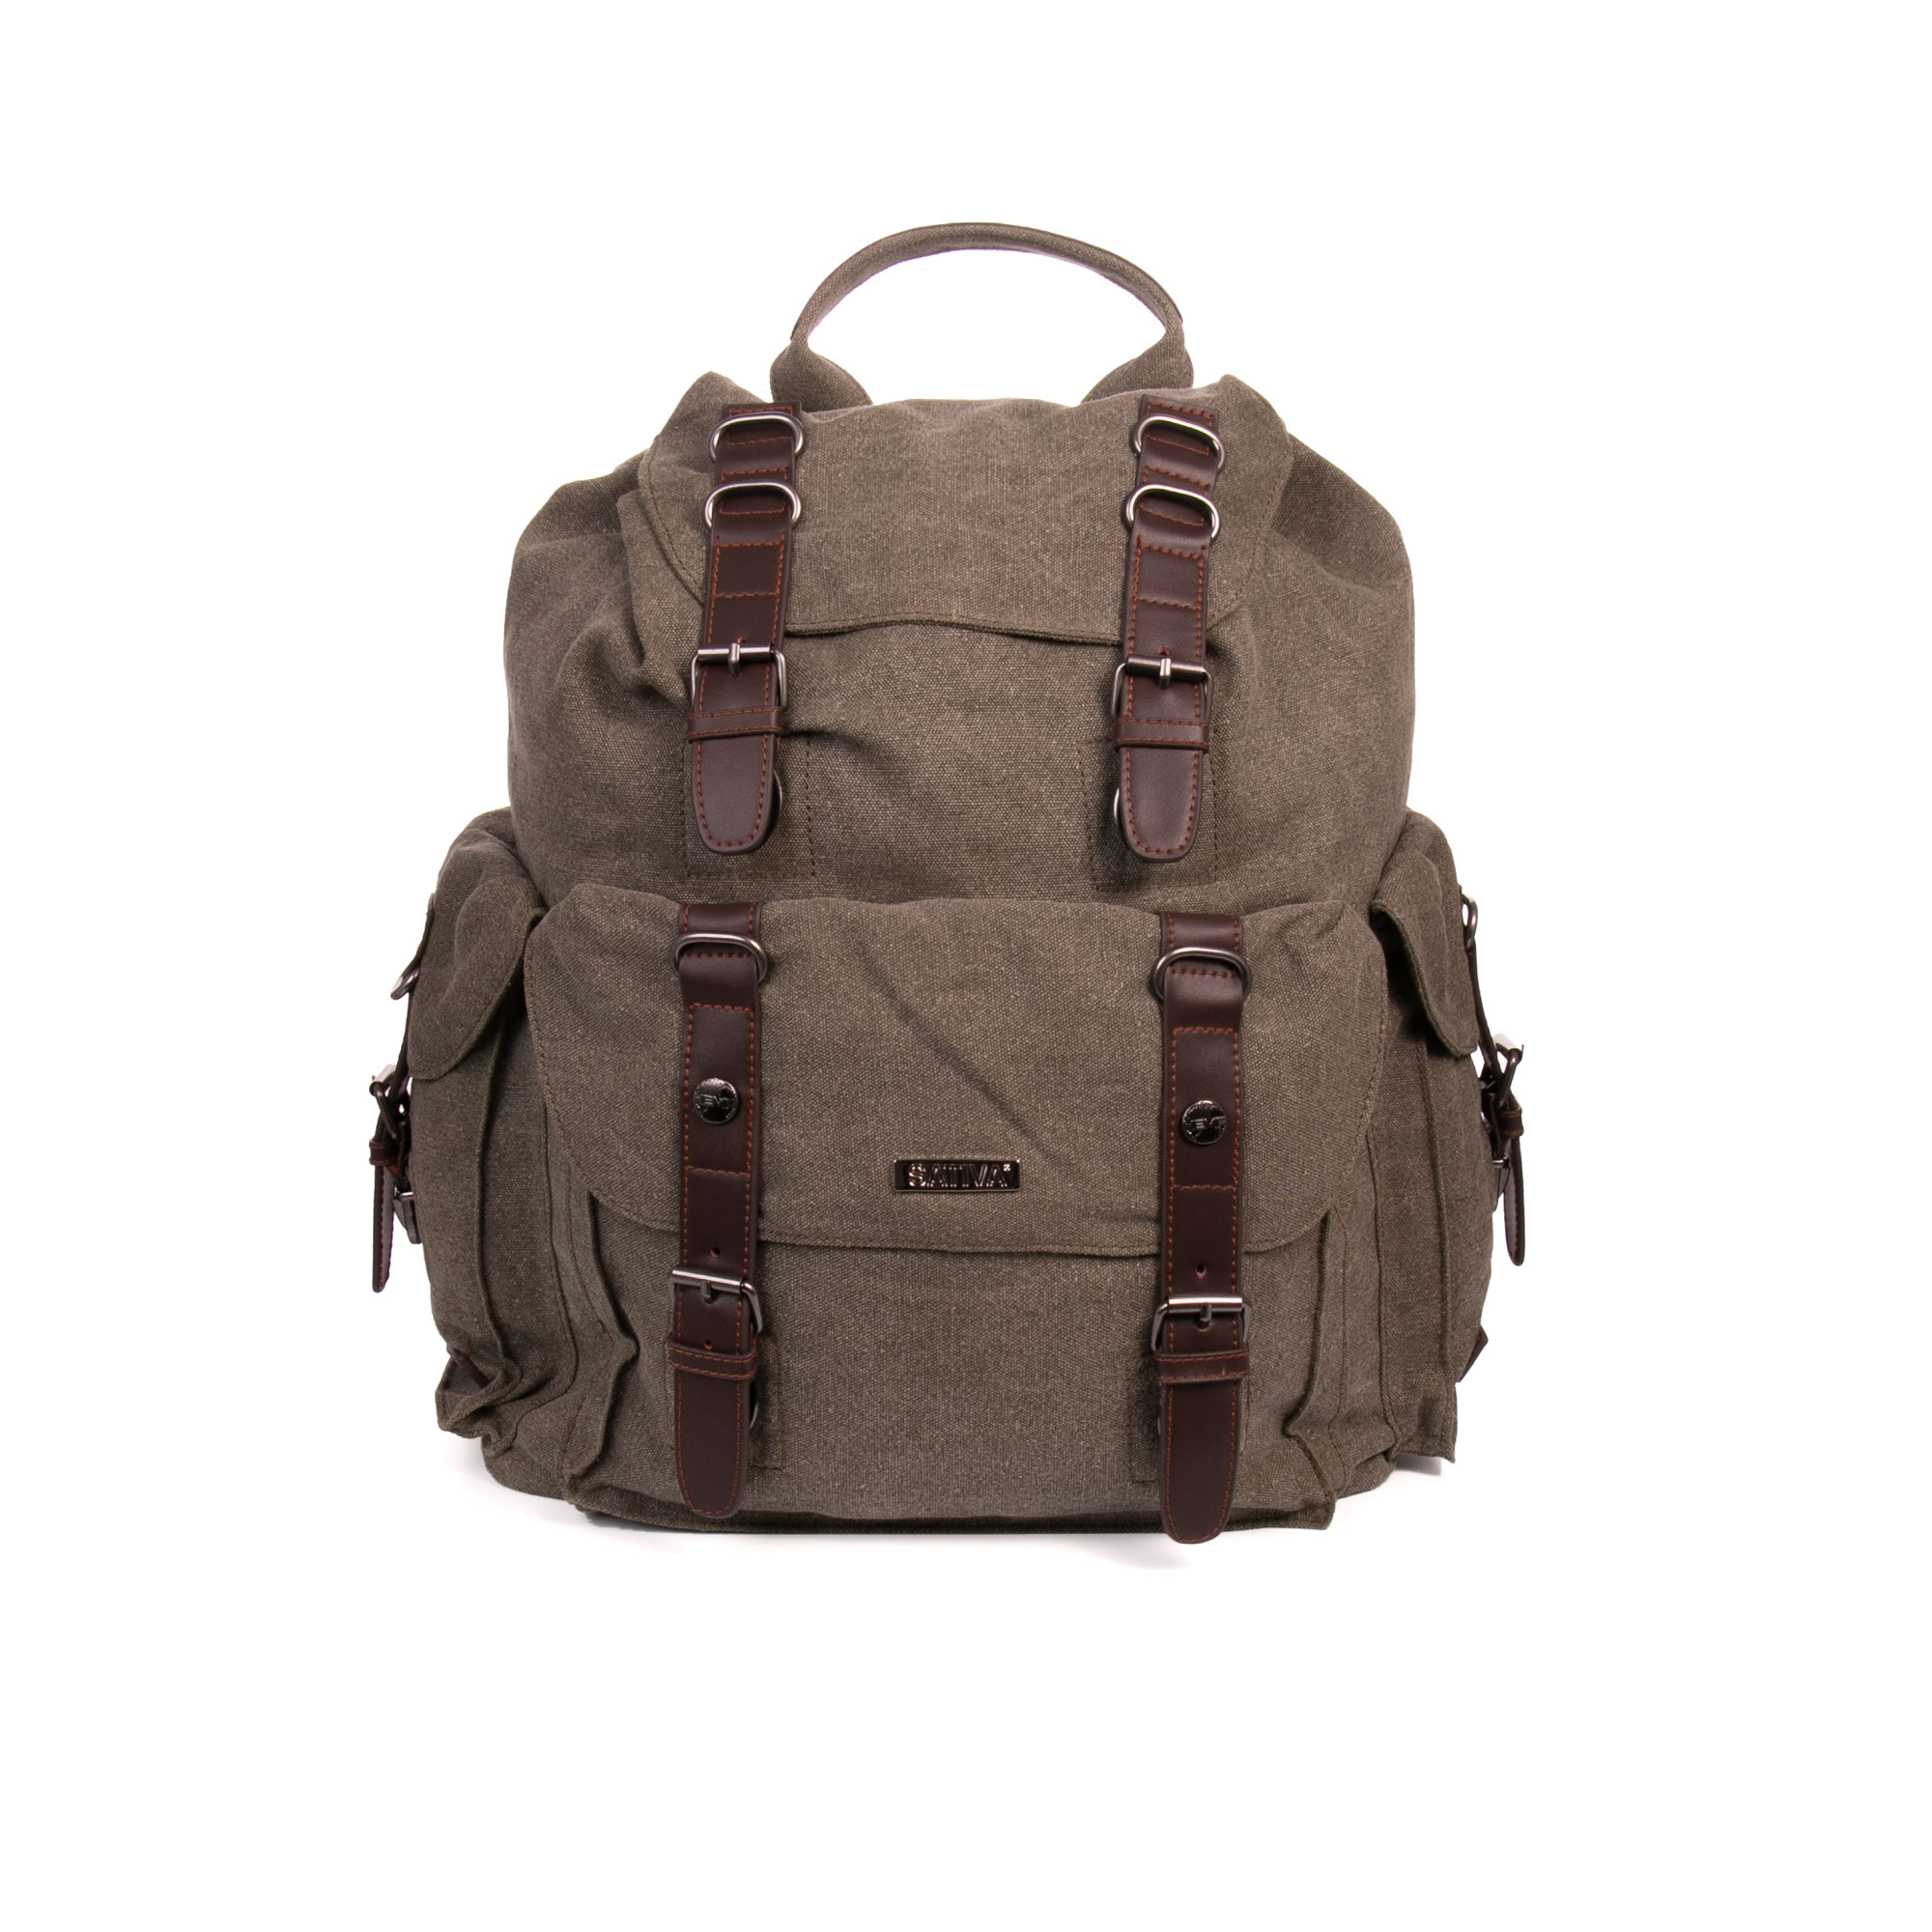 Sativa HEMP PS16 Organic Unisex Large Outdoor Multiuse Double Pocket Backpack Khaki